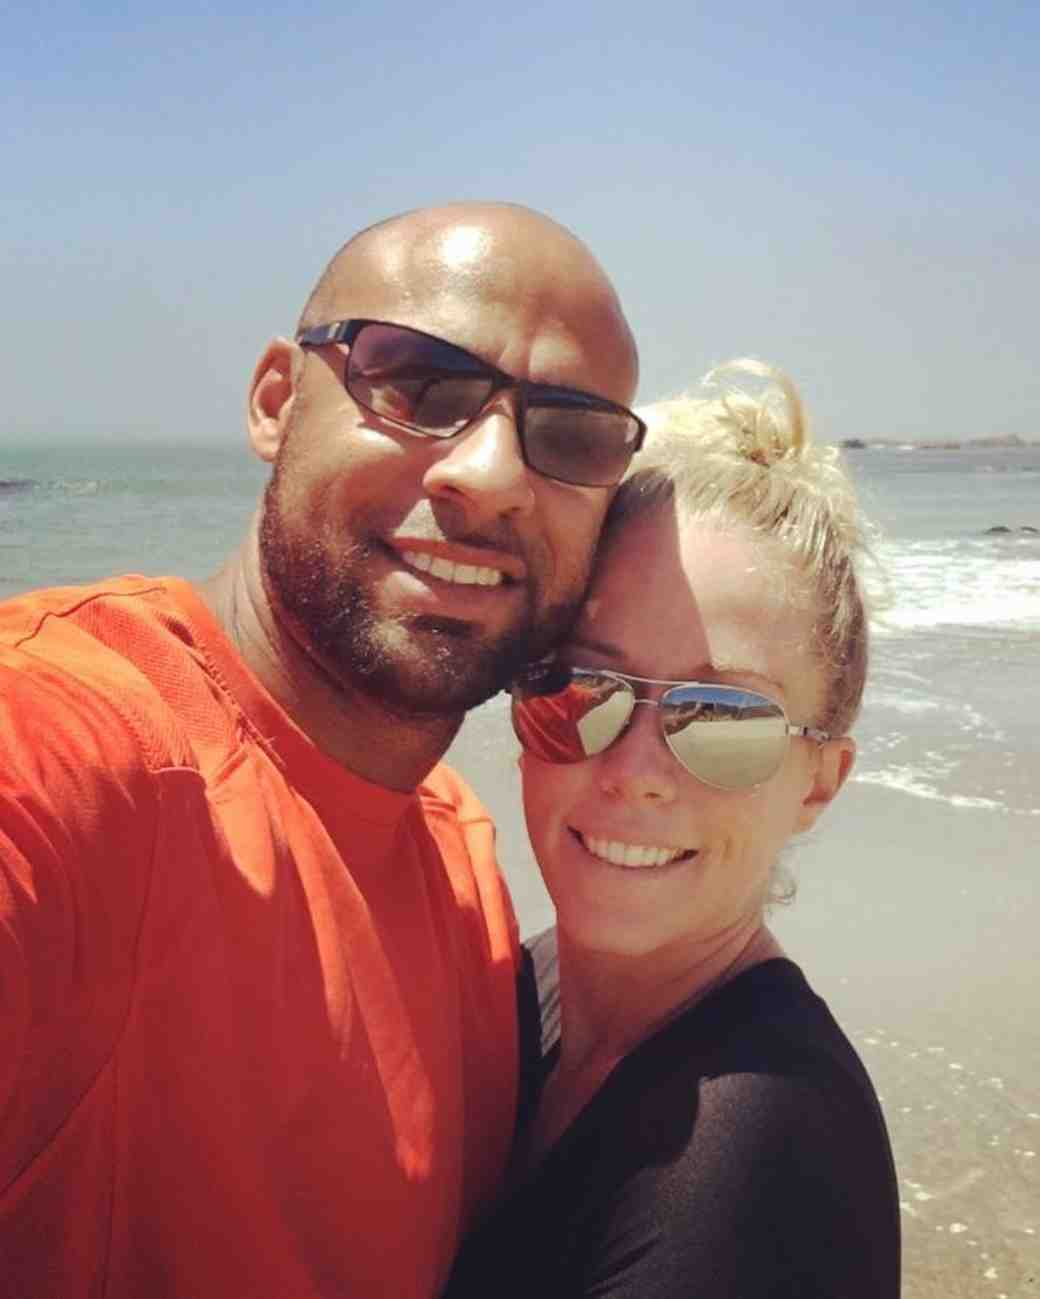 Kendra Wilkinson Baskett and husband Hank Baskett